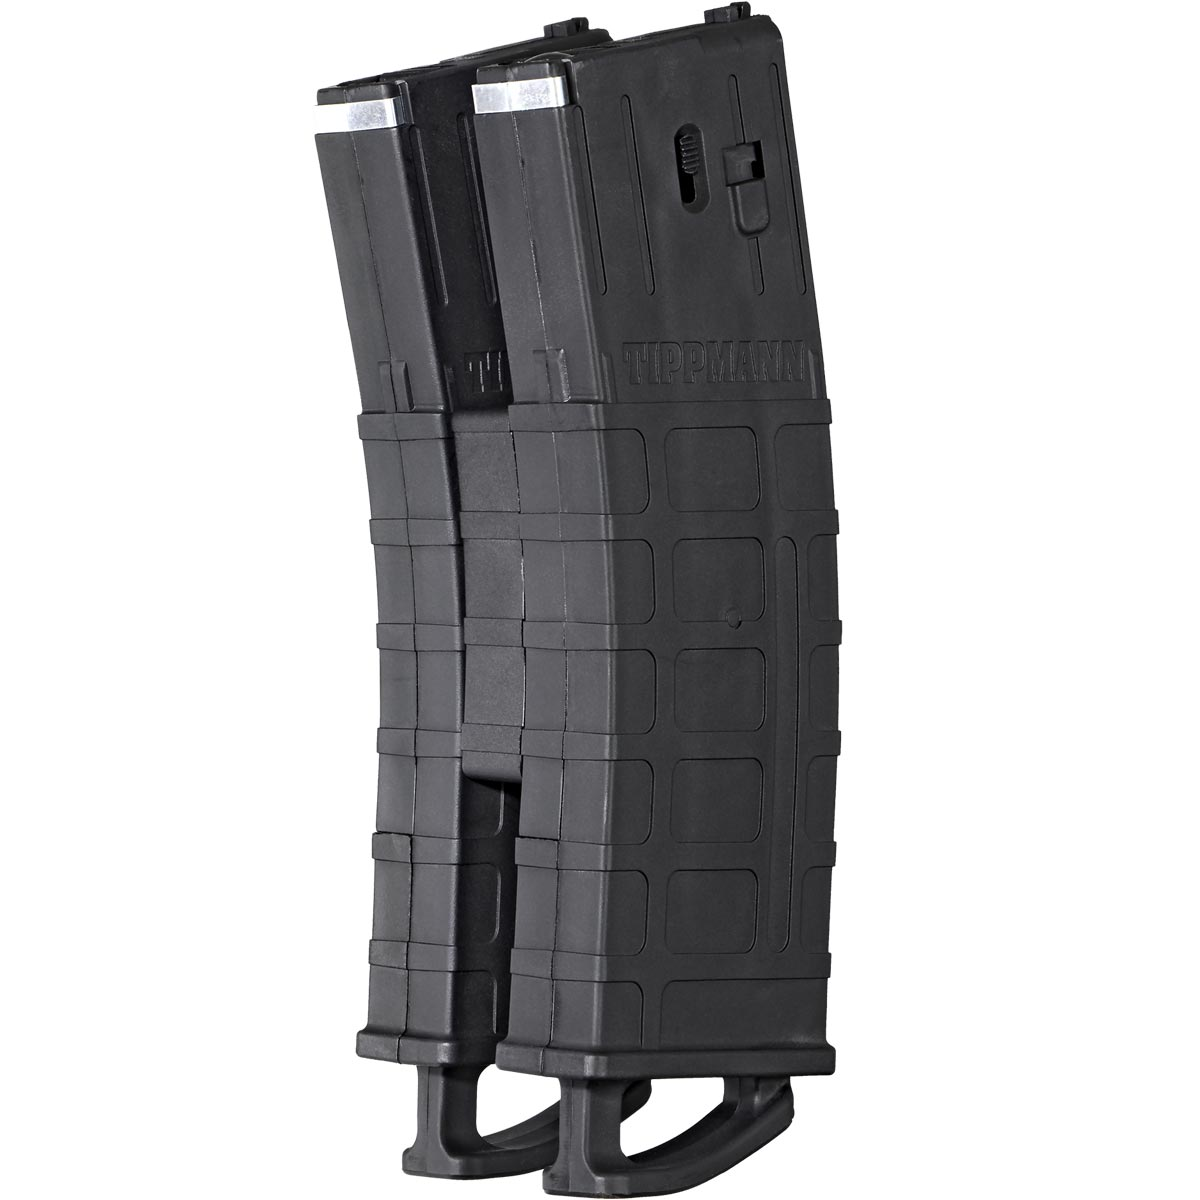 Tippmann TMC .68 Caliber Magazine 20 Round w/ Coupler 2 Pack Black